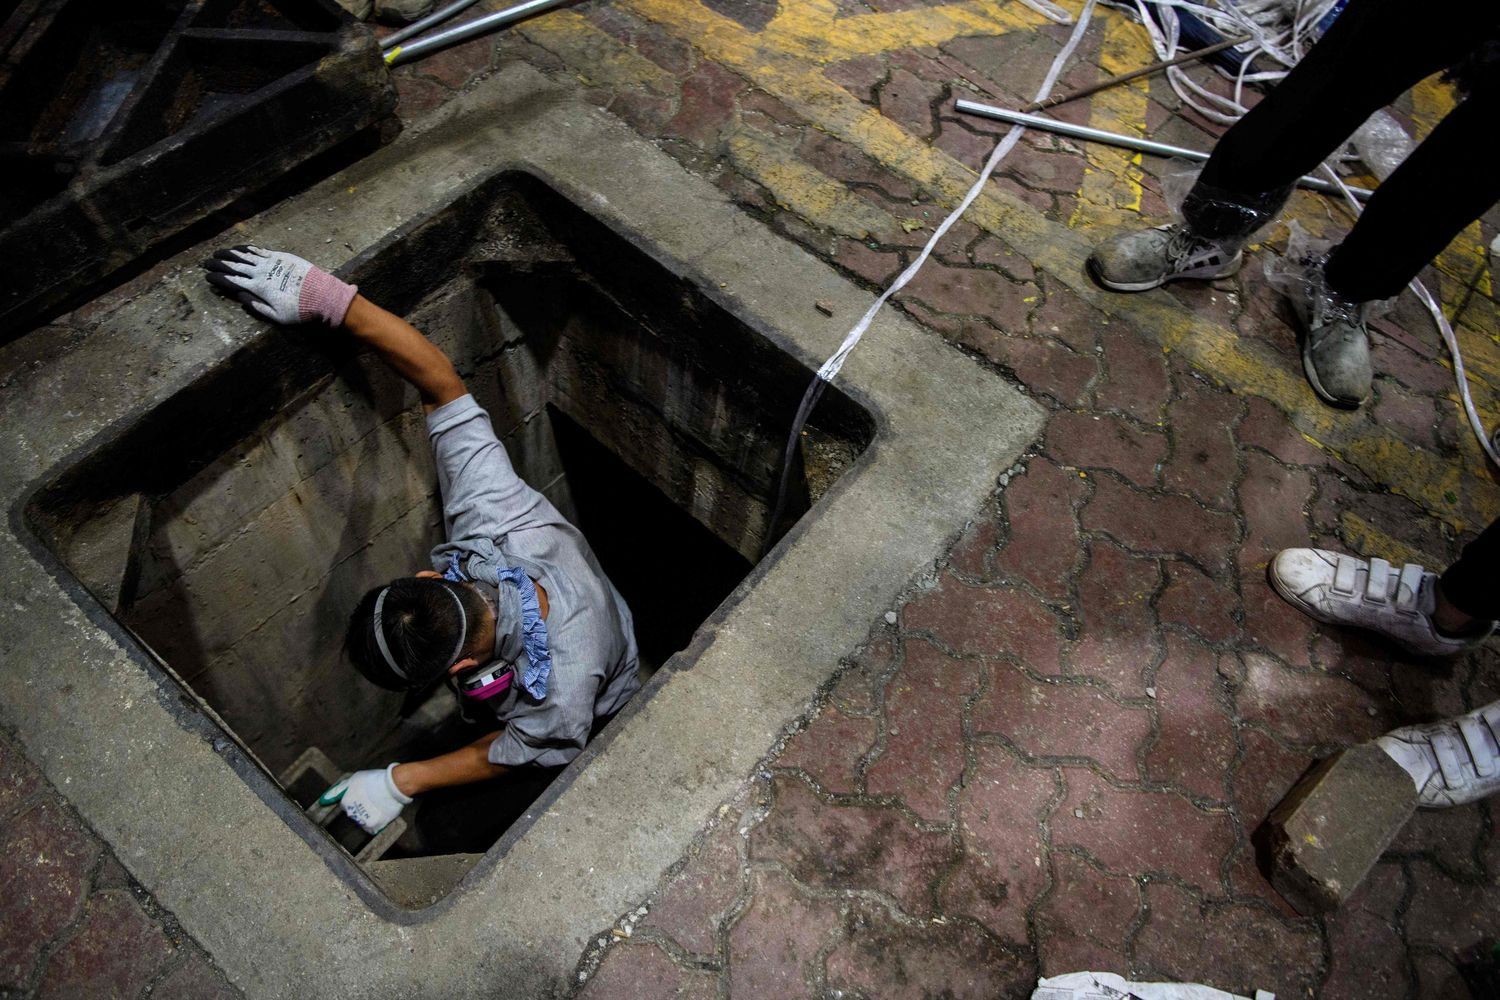 A protester climbs down into a sewer entrance with a guide string as he and others try to find an escape route from the Hong Kong Polytechnic University in the Hung Hom district of Hong Kong, early Tuesday. (Photo by AFP)